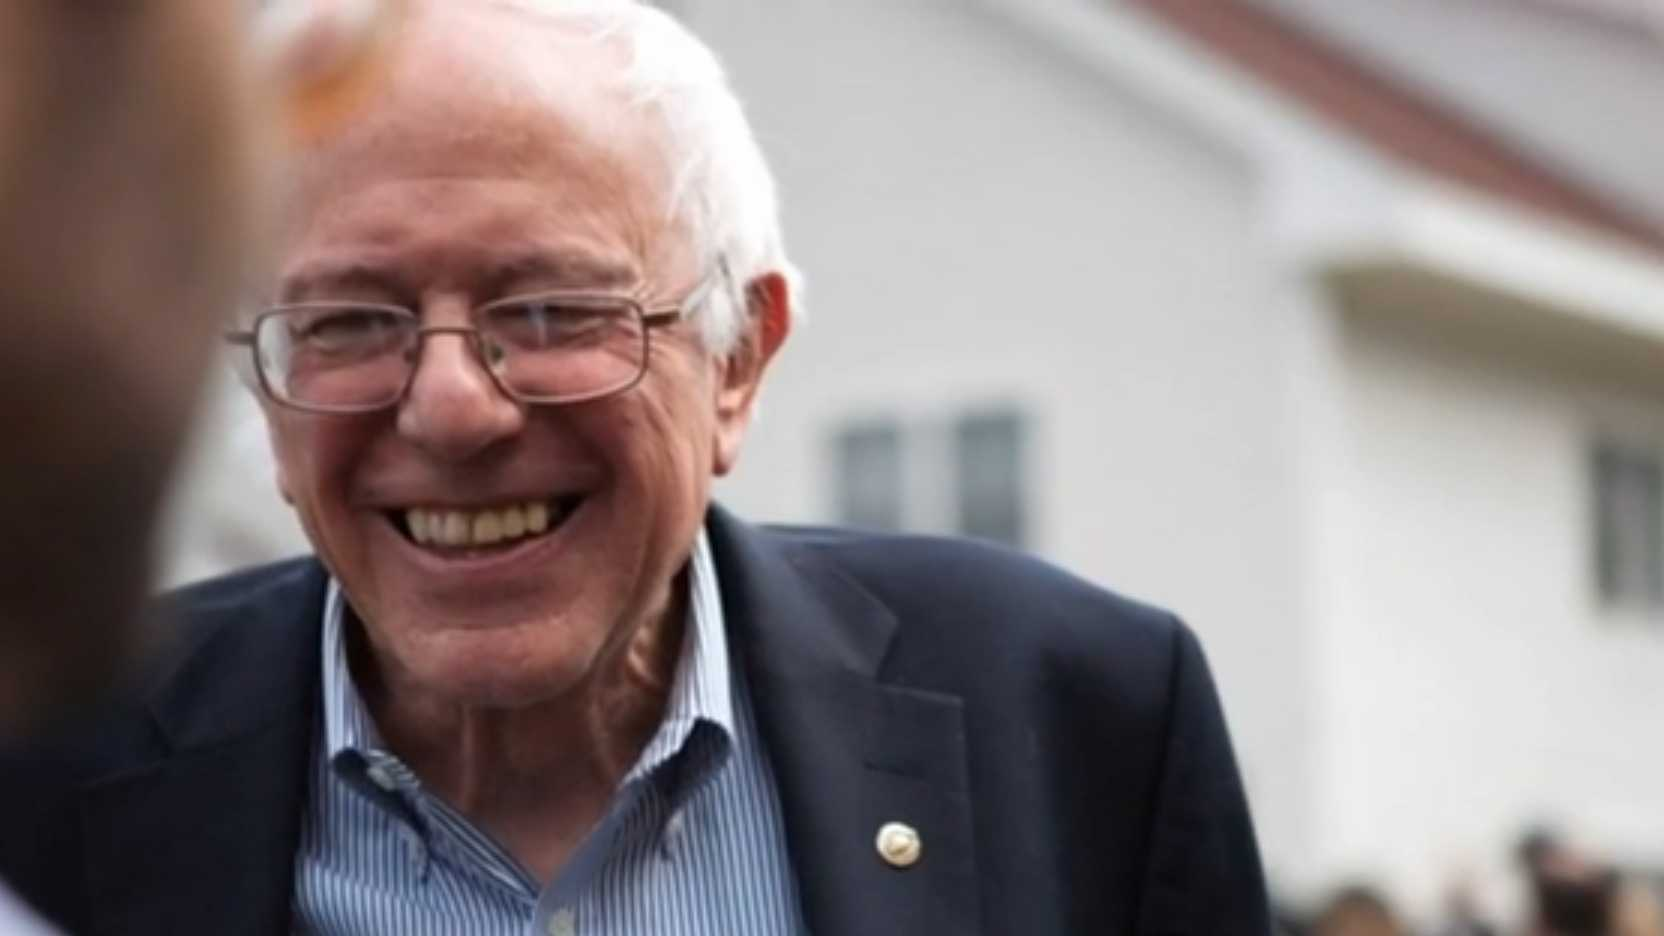 Democratic candidate Bernie Sanders vows to keep fighting for the party's presidential nomination all the way to the convention, despite Hillary Clinton being projected as the party's presidential candidate by the Associated Press.